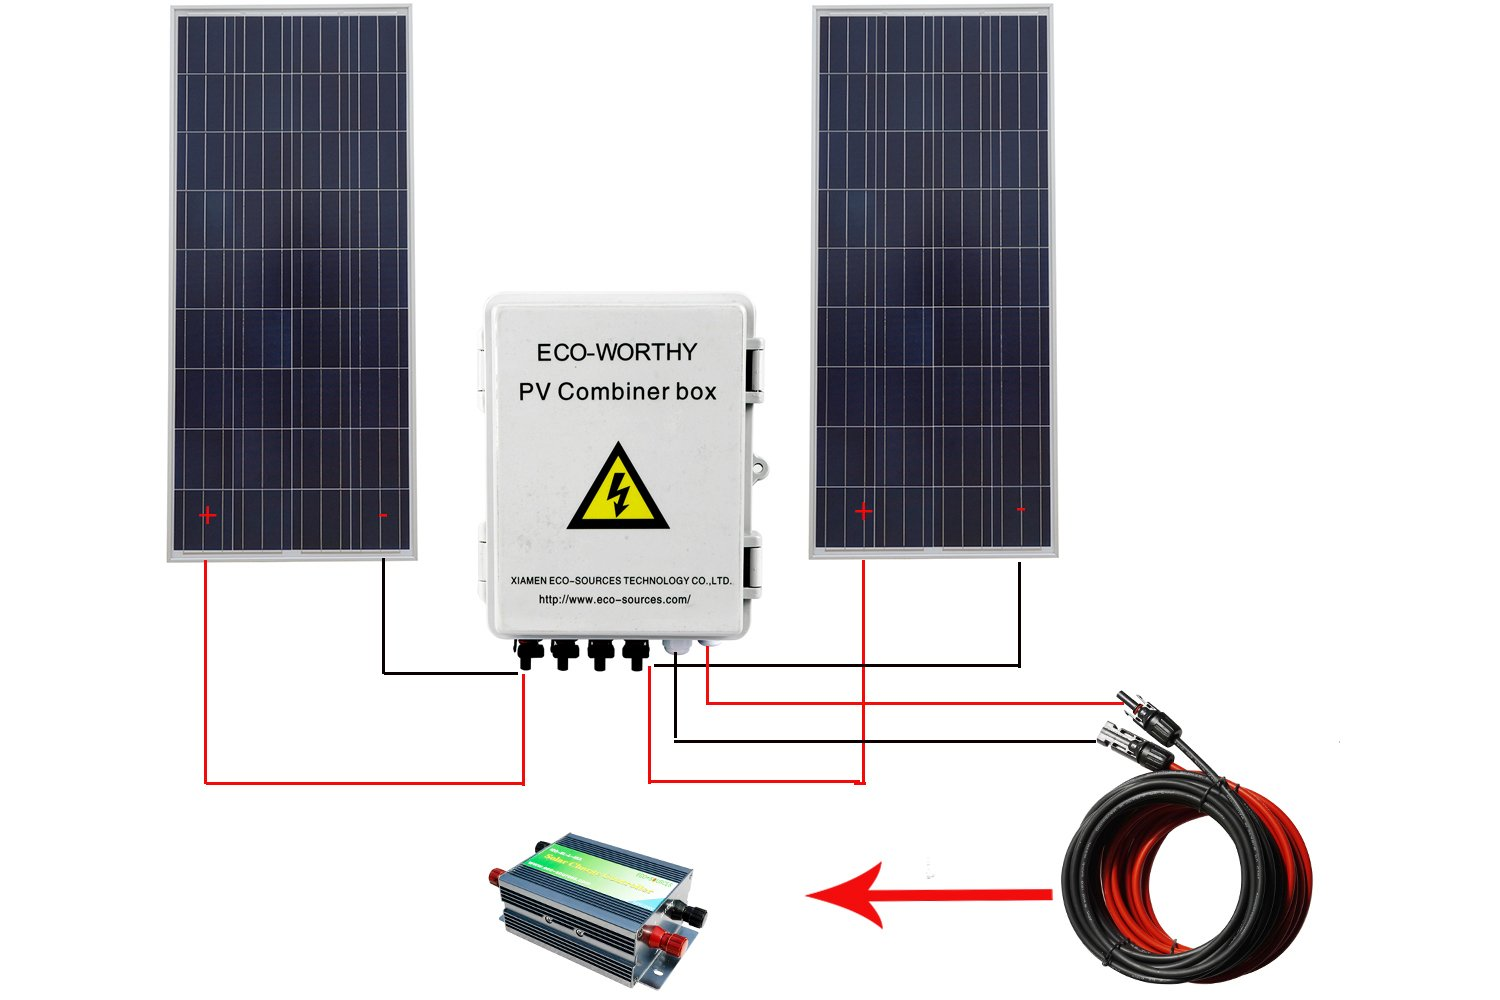 ECO LLC 4 String PV Combiner Box with Lighting Arrester, 10A Rated Current,Universal Solar Panel Connectors,Grounding Bus-Bar Ideal For Off-grid Solar System by ECO LLC (Image #7)